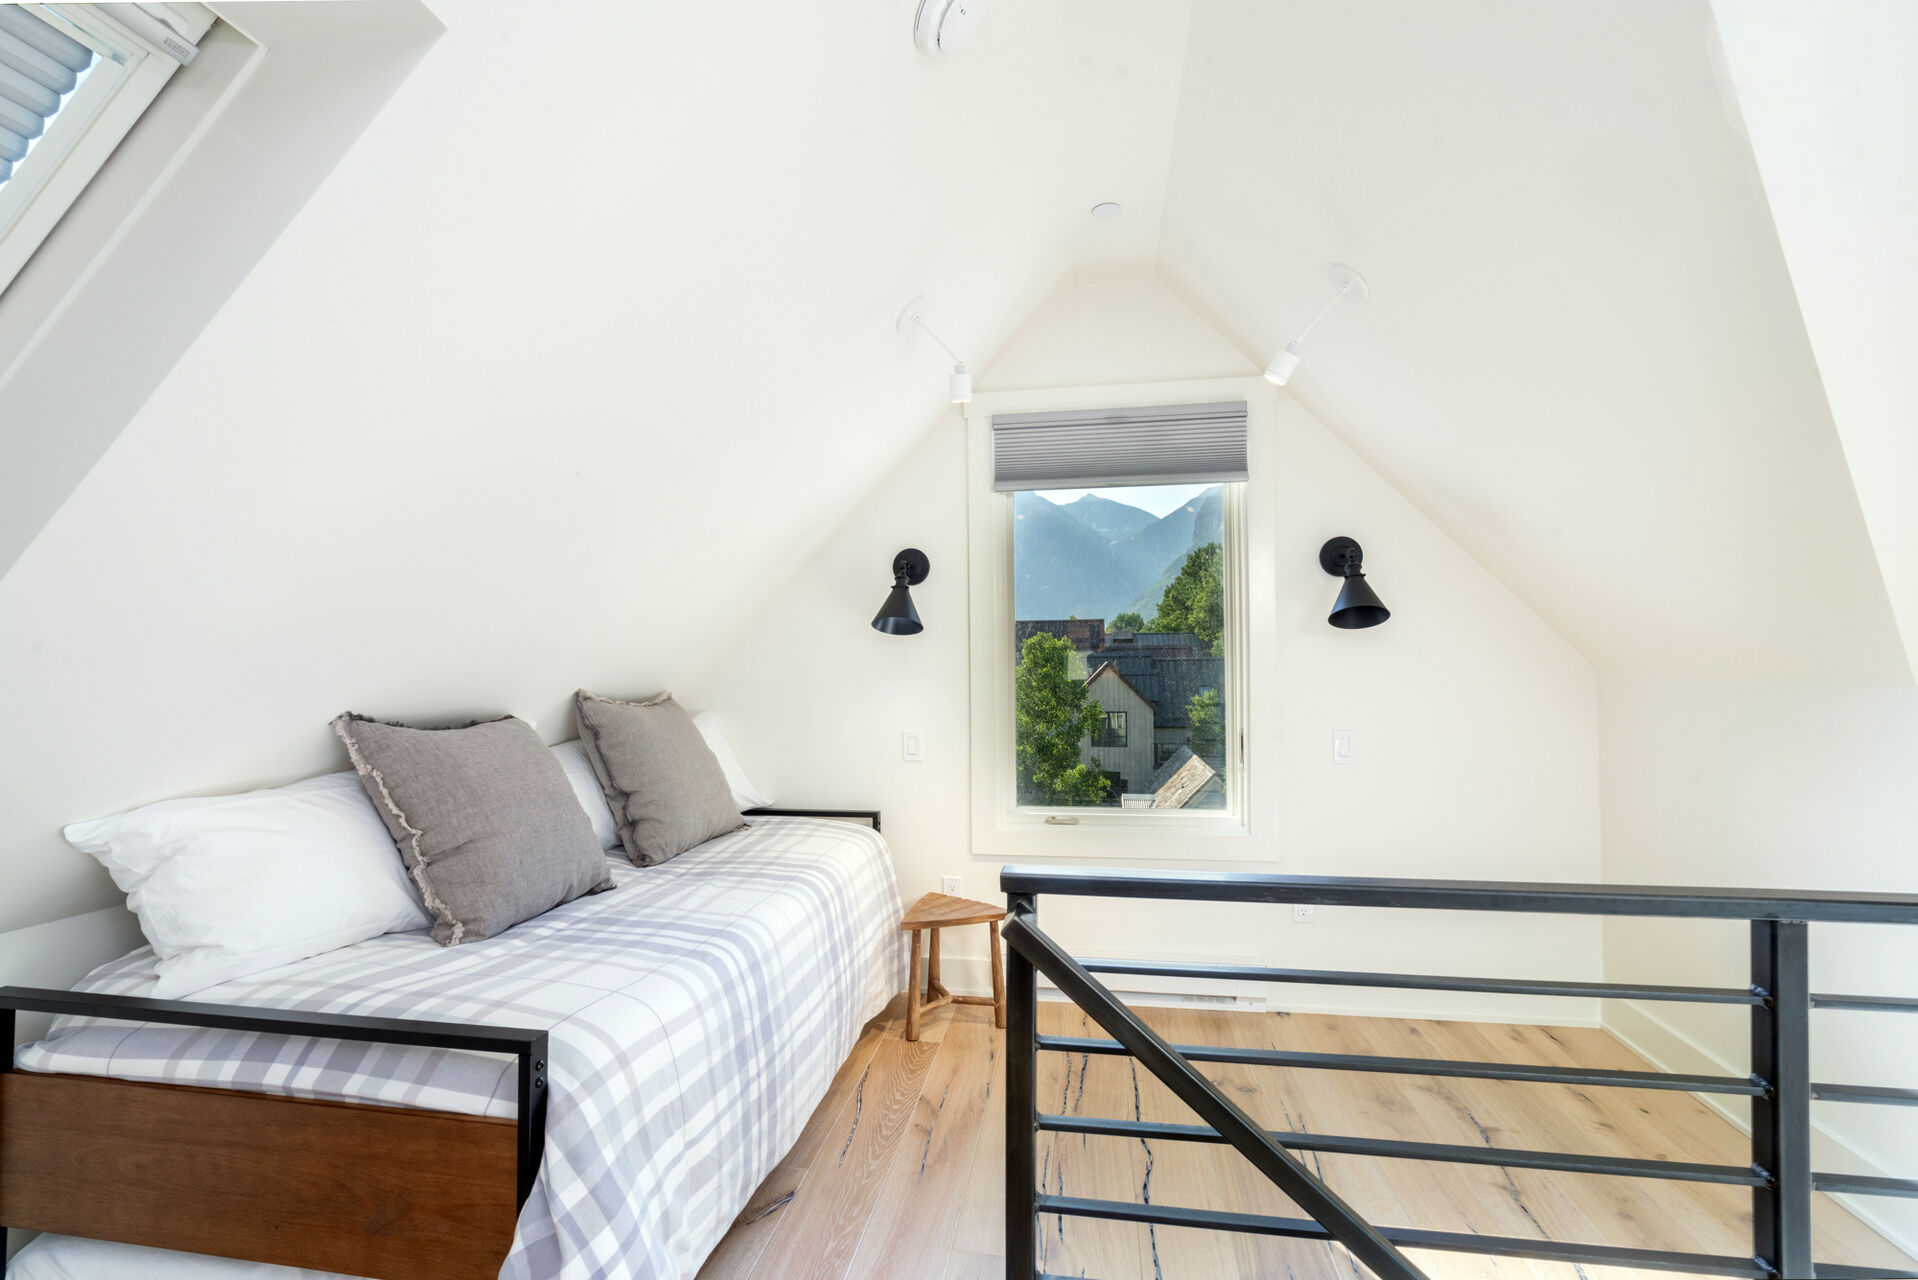 Loft area with a bed